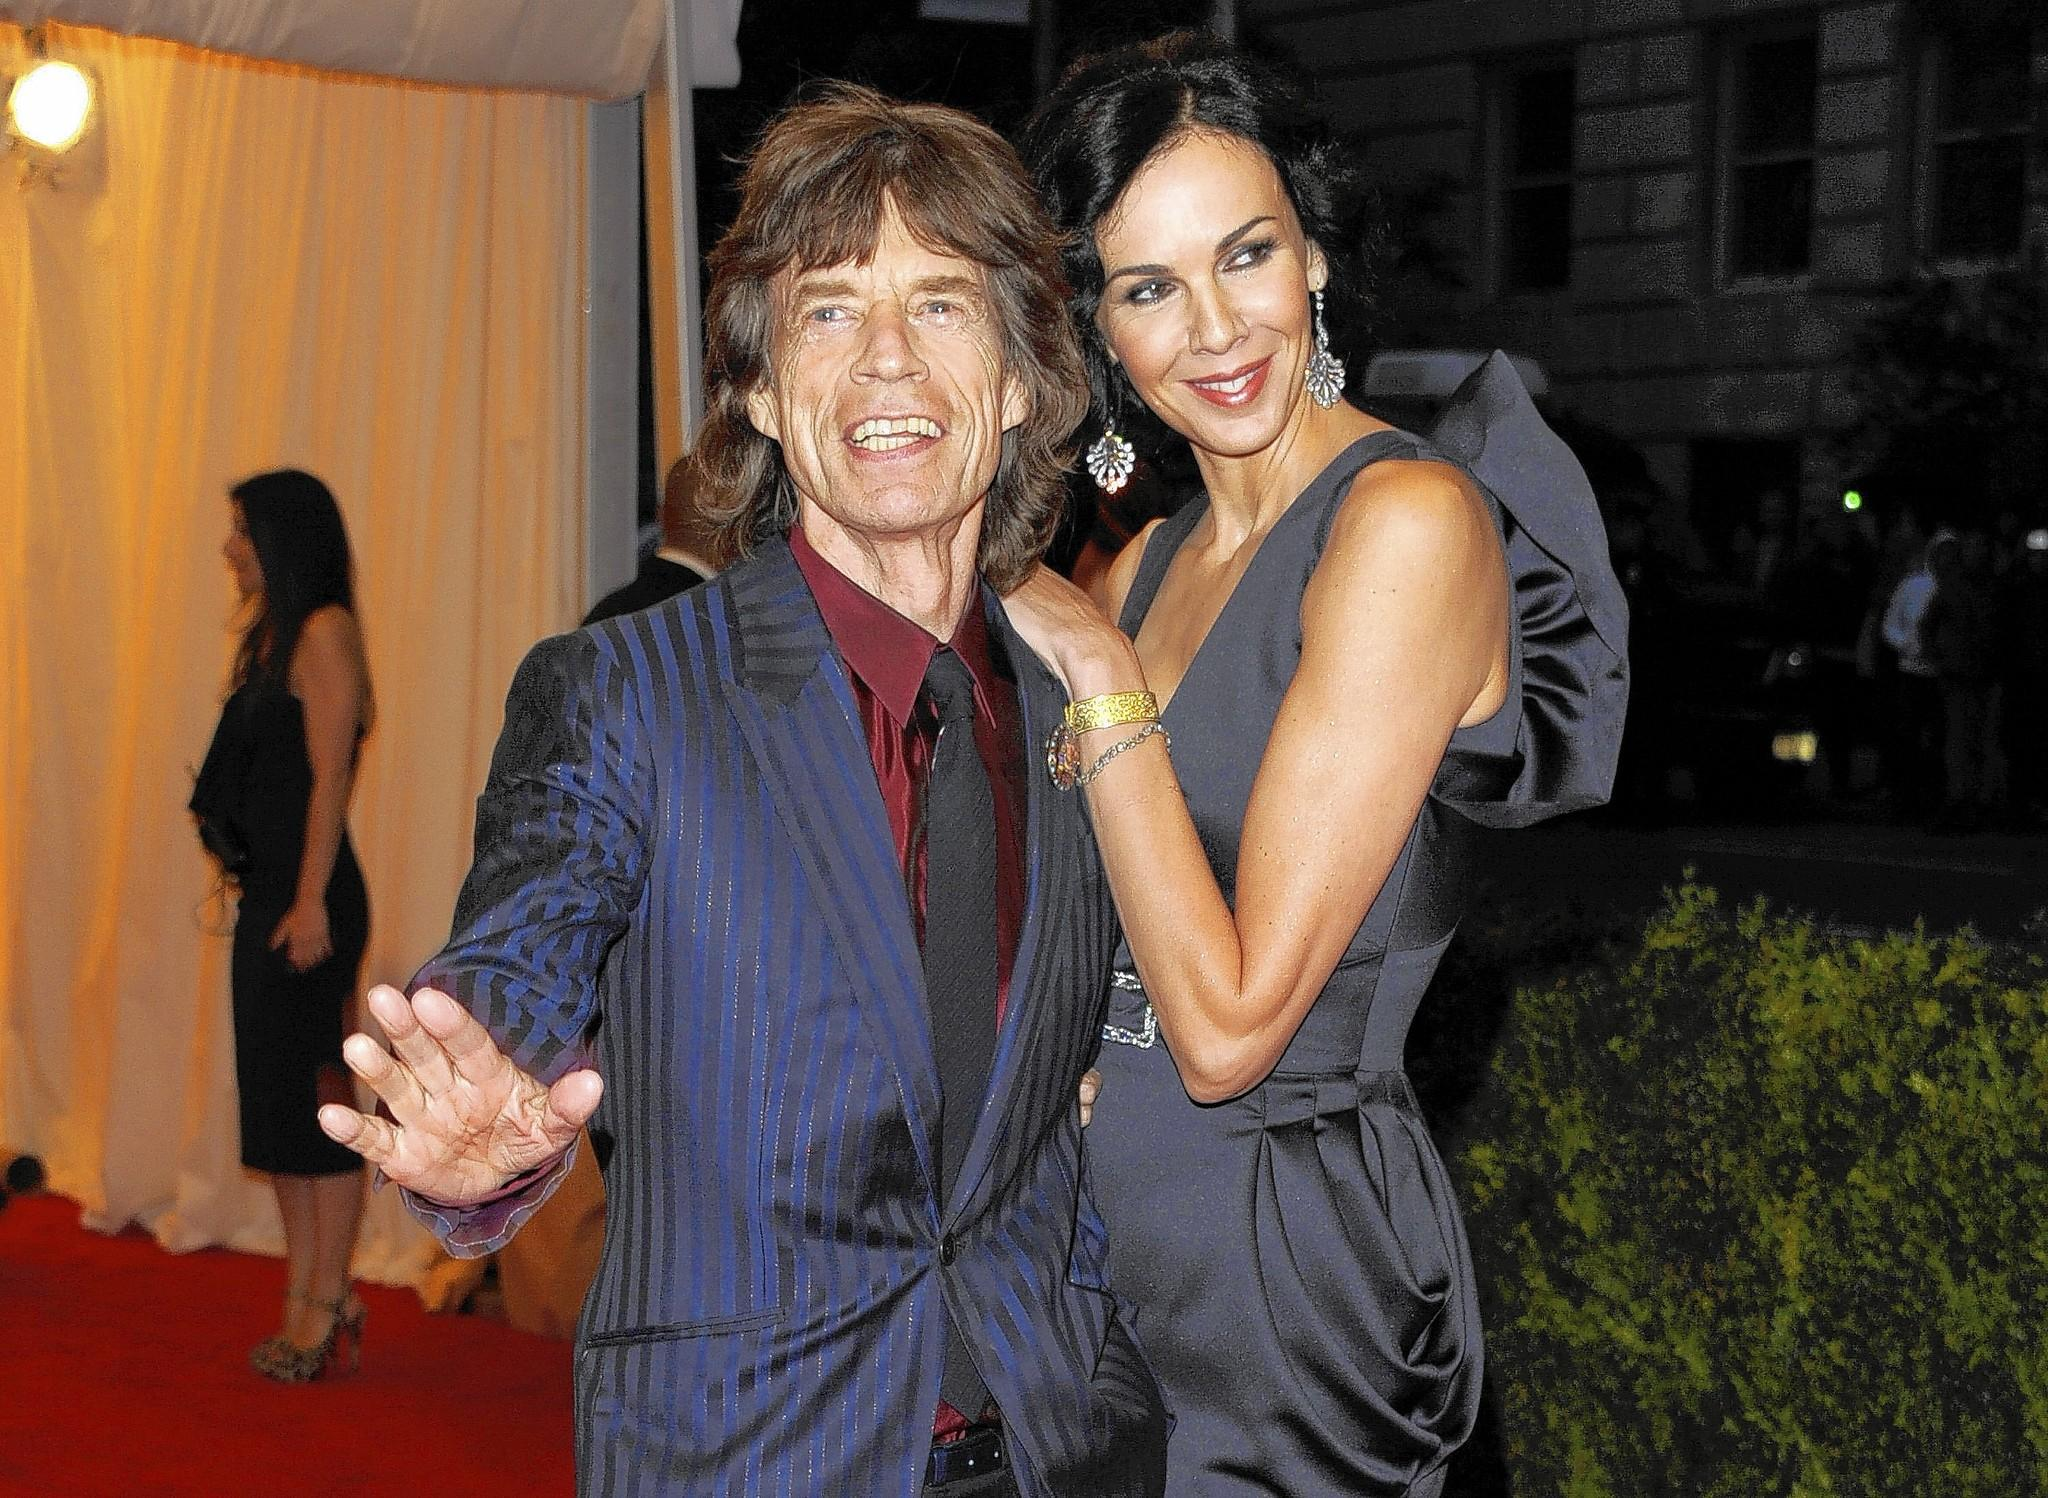 Rolling Stones singer Mick Jagger, left, and L'Wren Scott at a Metropolitan Museum of Art Costume Institute gala benefit in May 2012. The designer was found dead Monday in her New York City apartment.